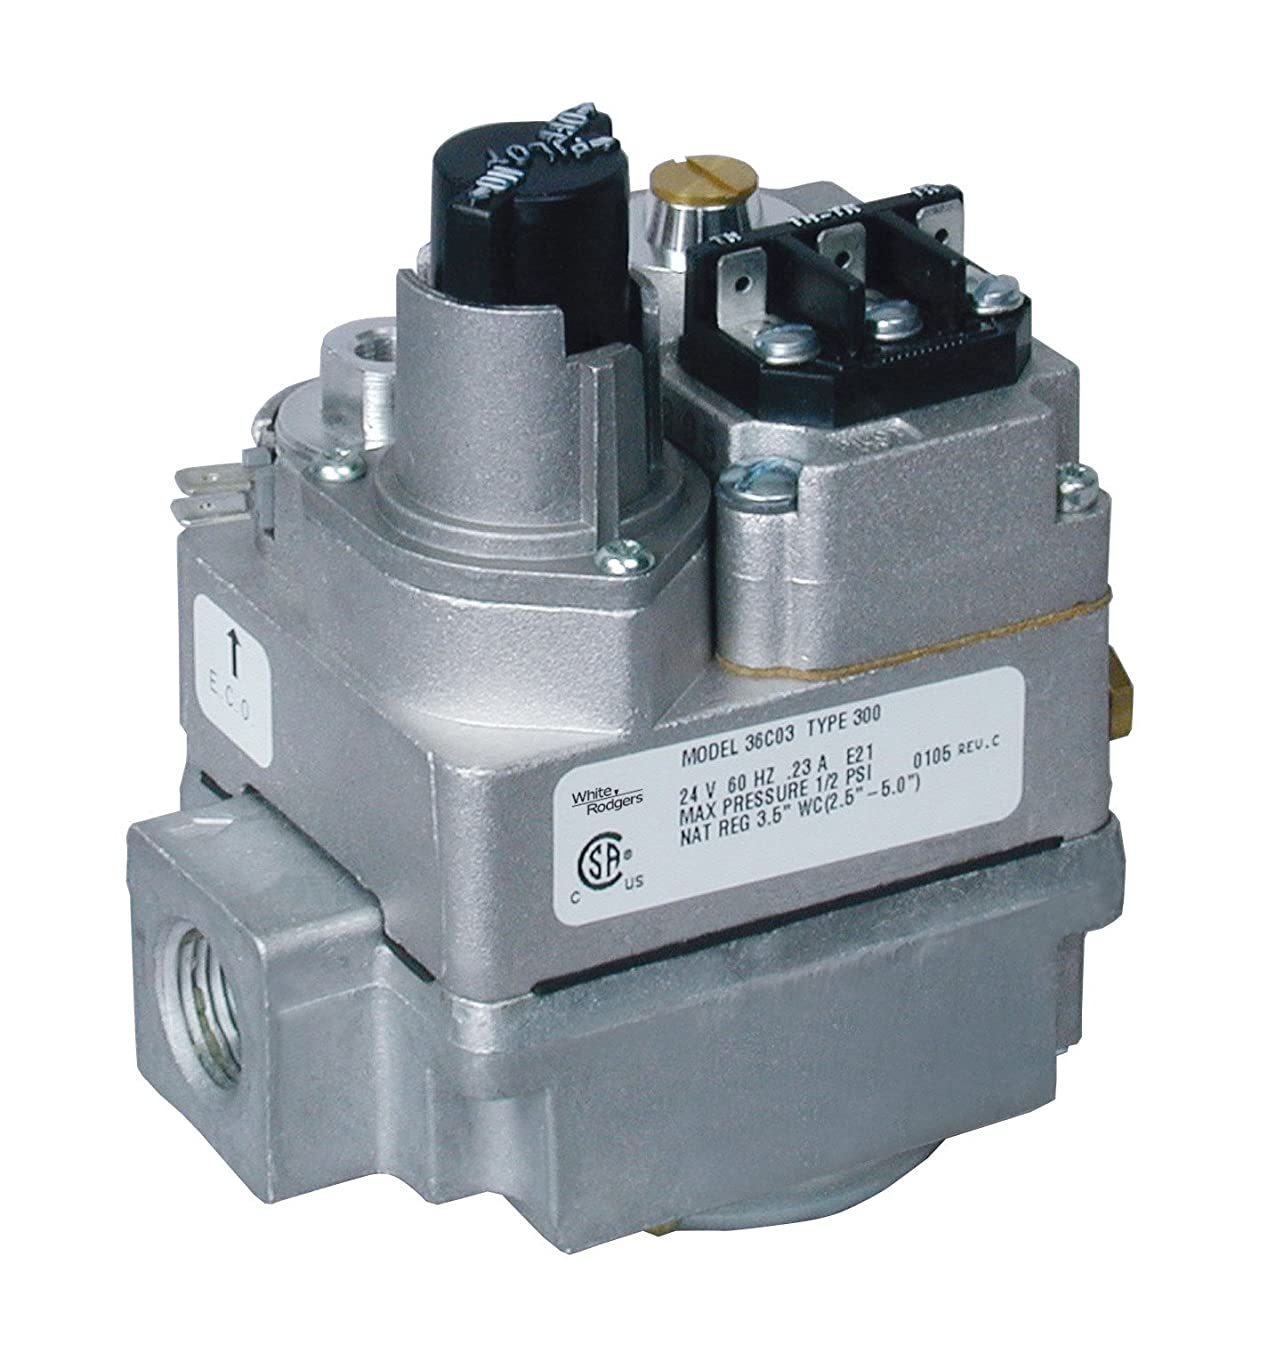 White Rodgers 36C03-300 Gas Valve with LP Conversion Kit